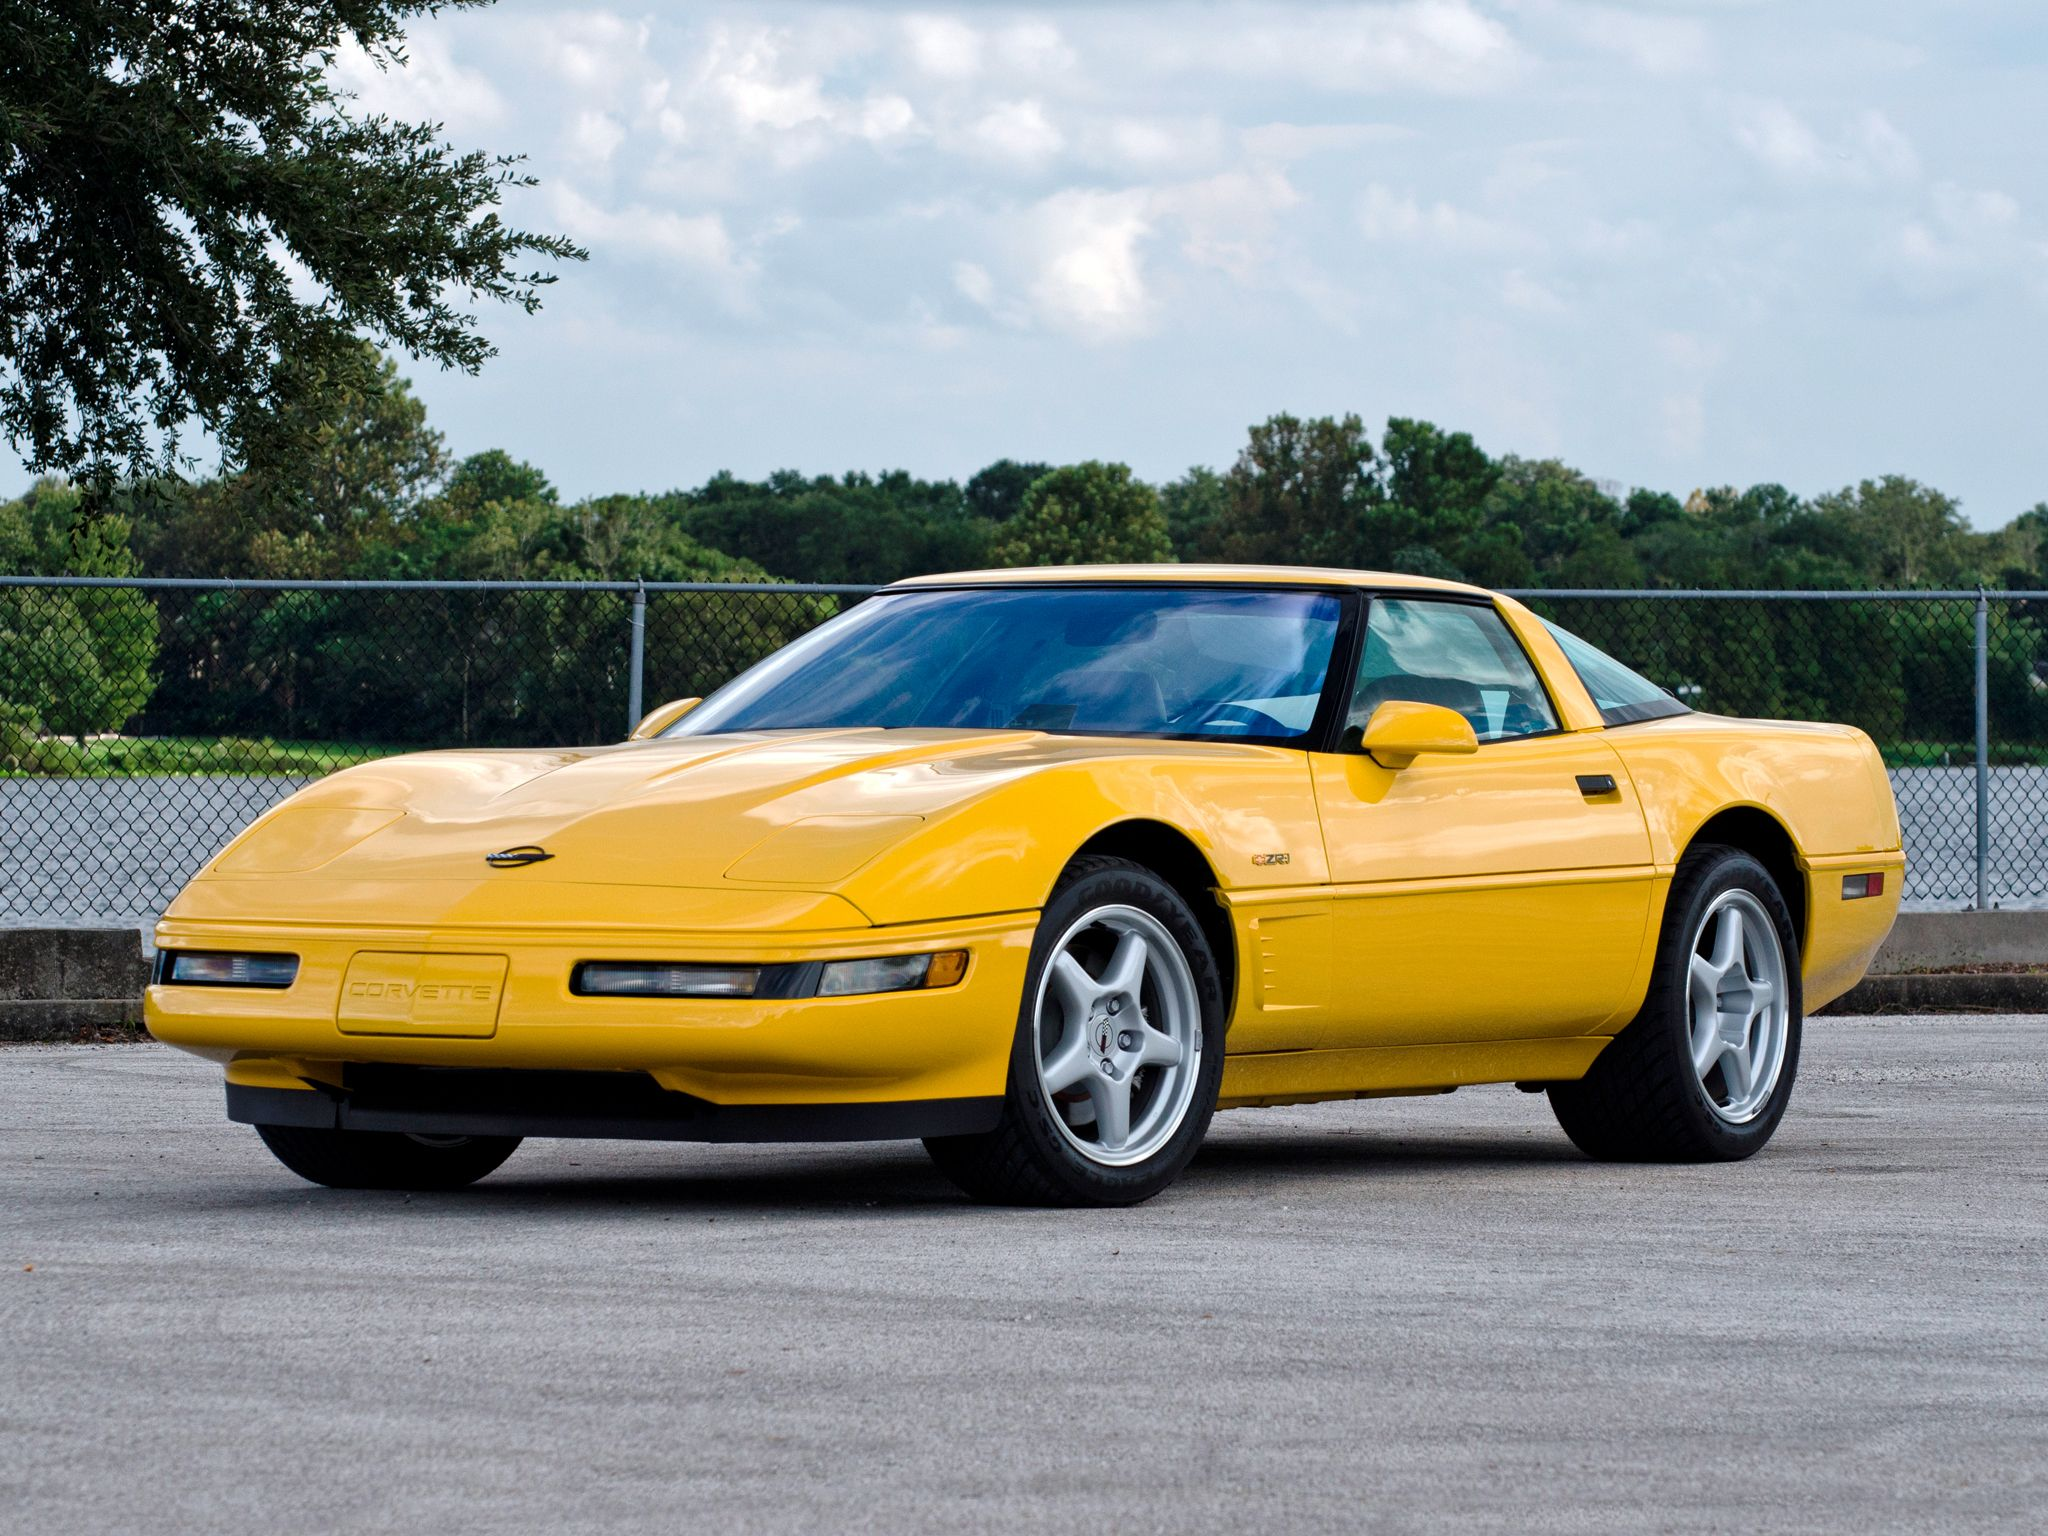 1991 95 Chevrolet C4 Corvette Zr1 Coupe Corvette Zr1 Chevrolet